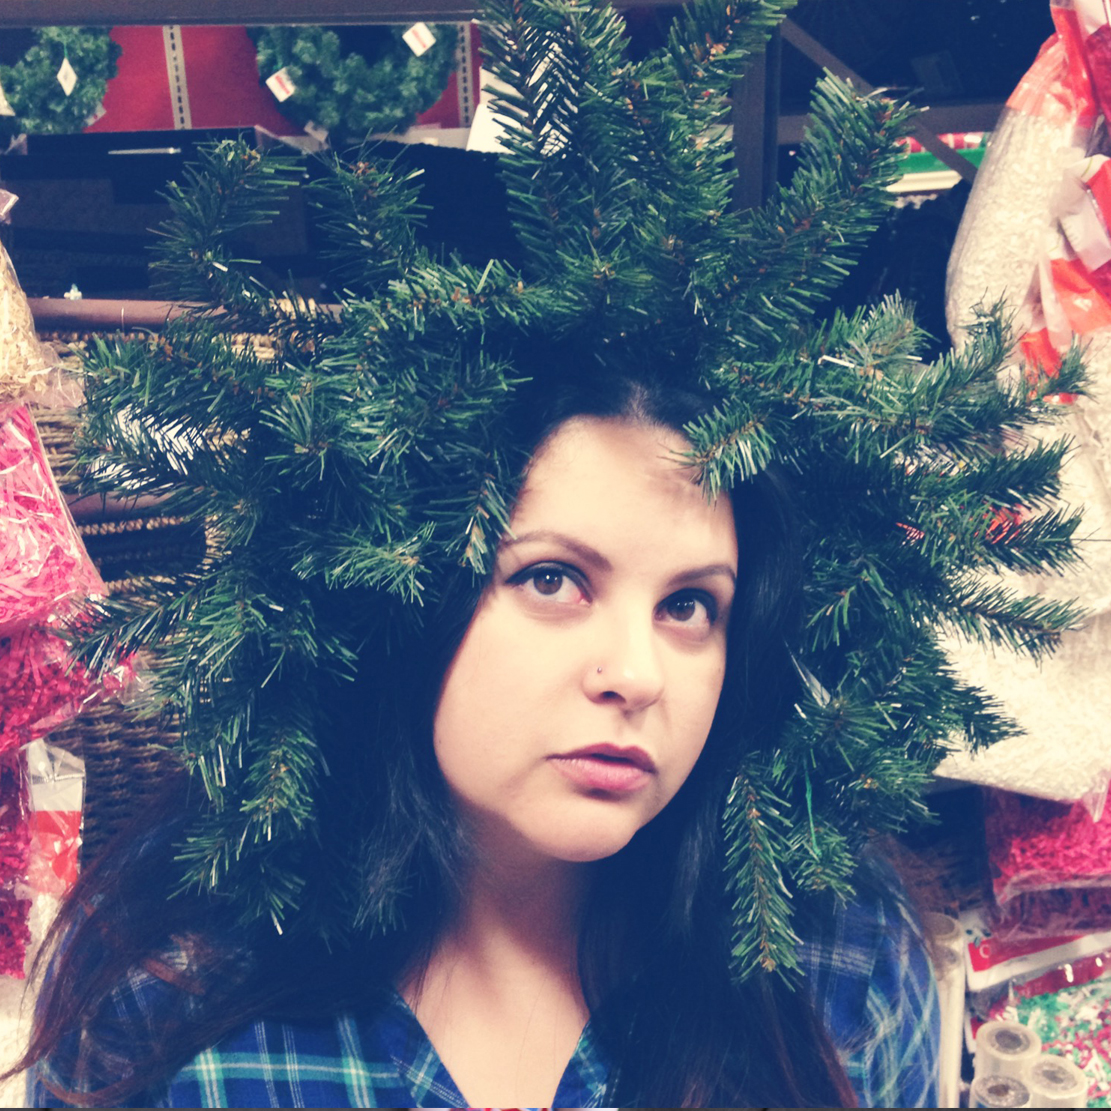 Vanessa Mijares wearing a wreath as a holiday hat